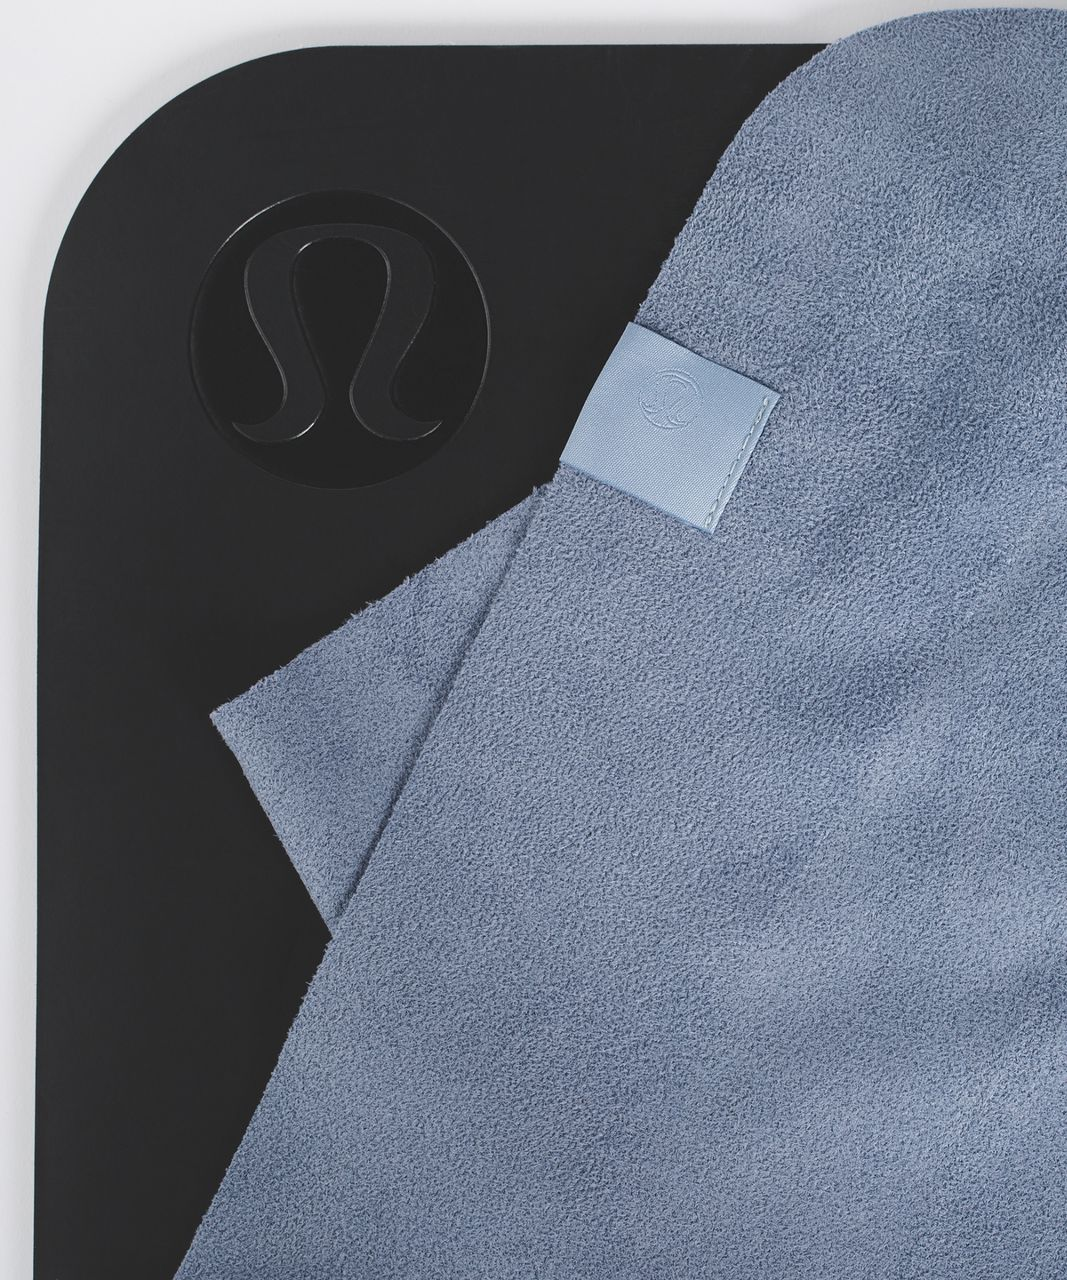 Lululemon The (Small) Towel - Blue Denim